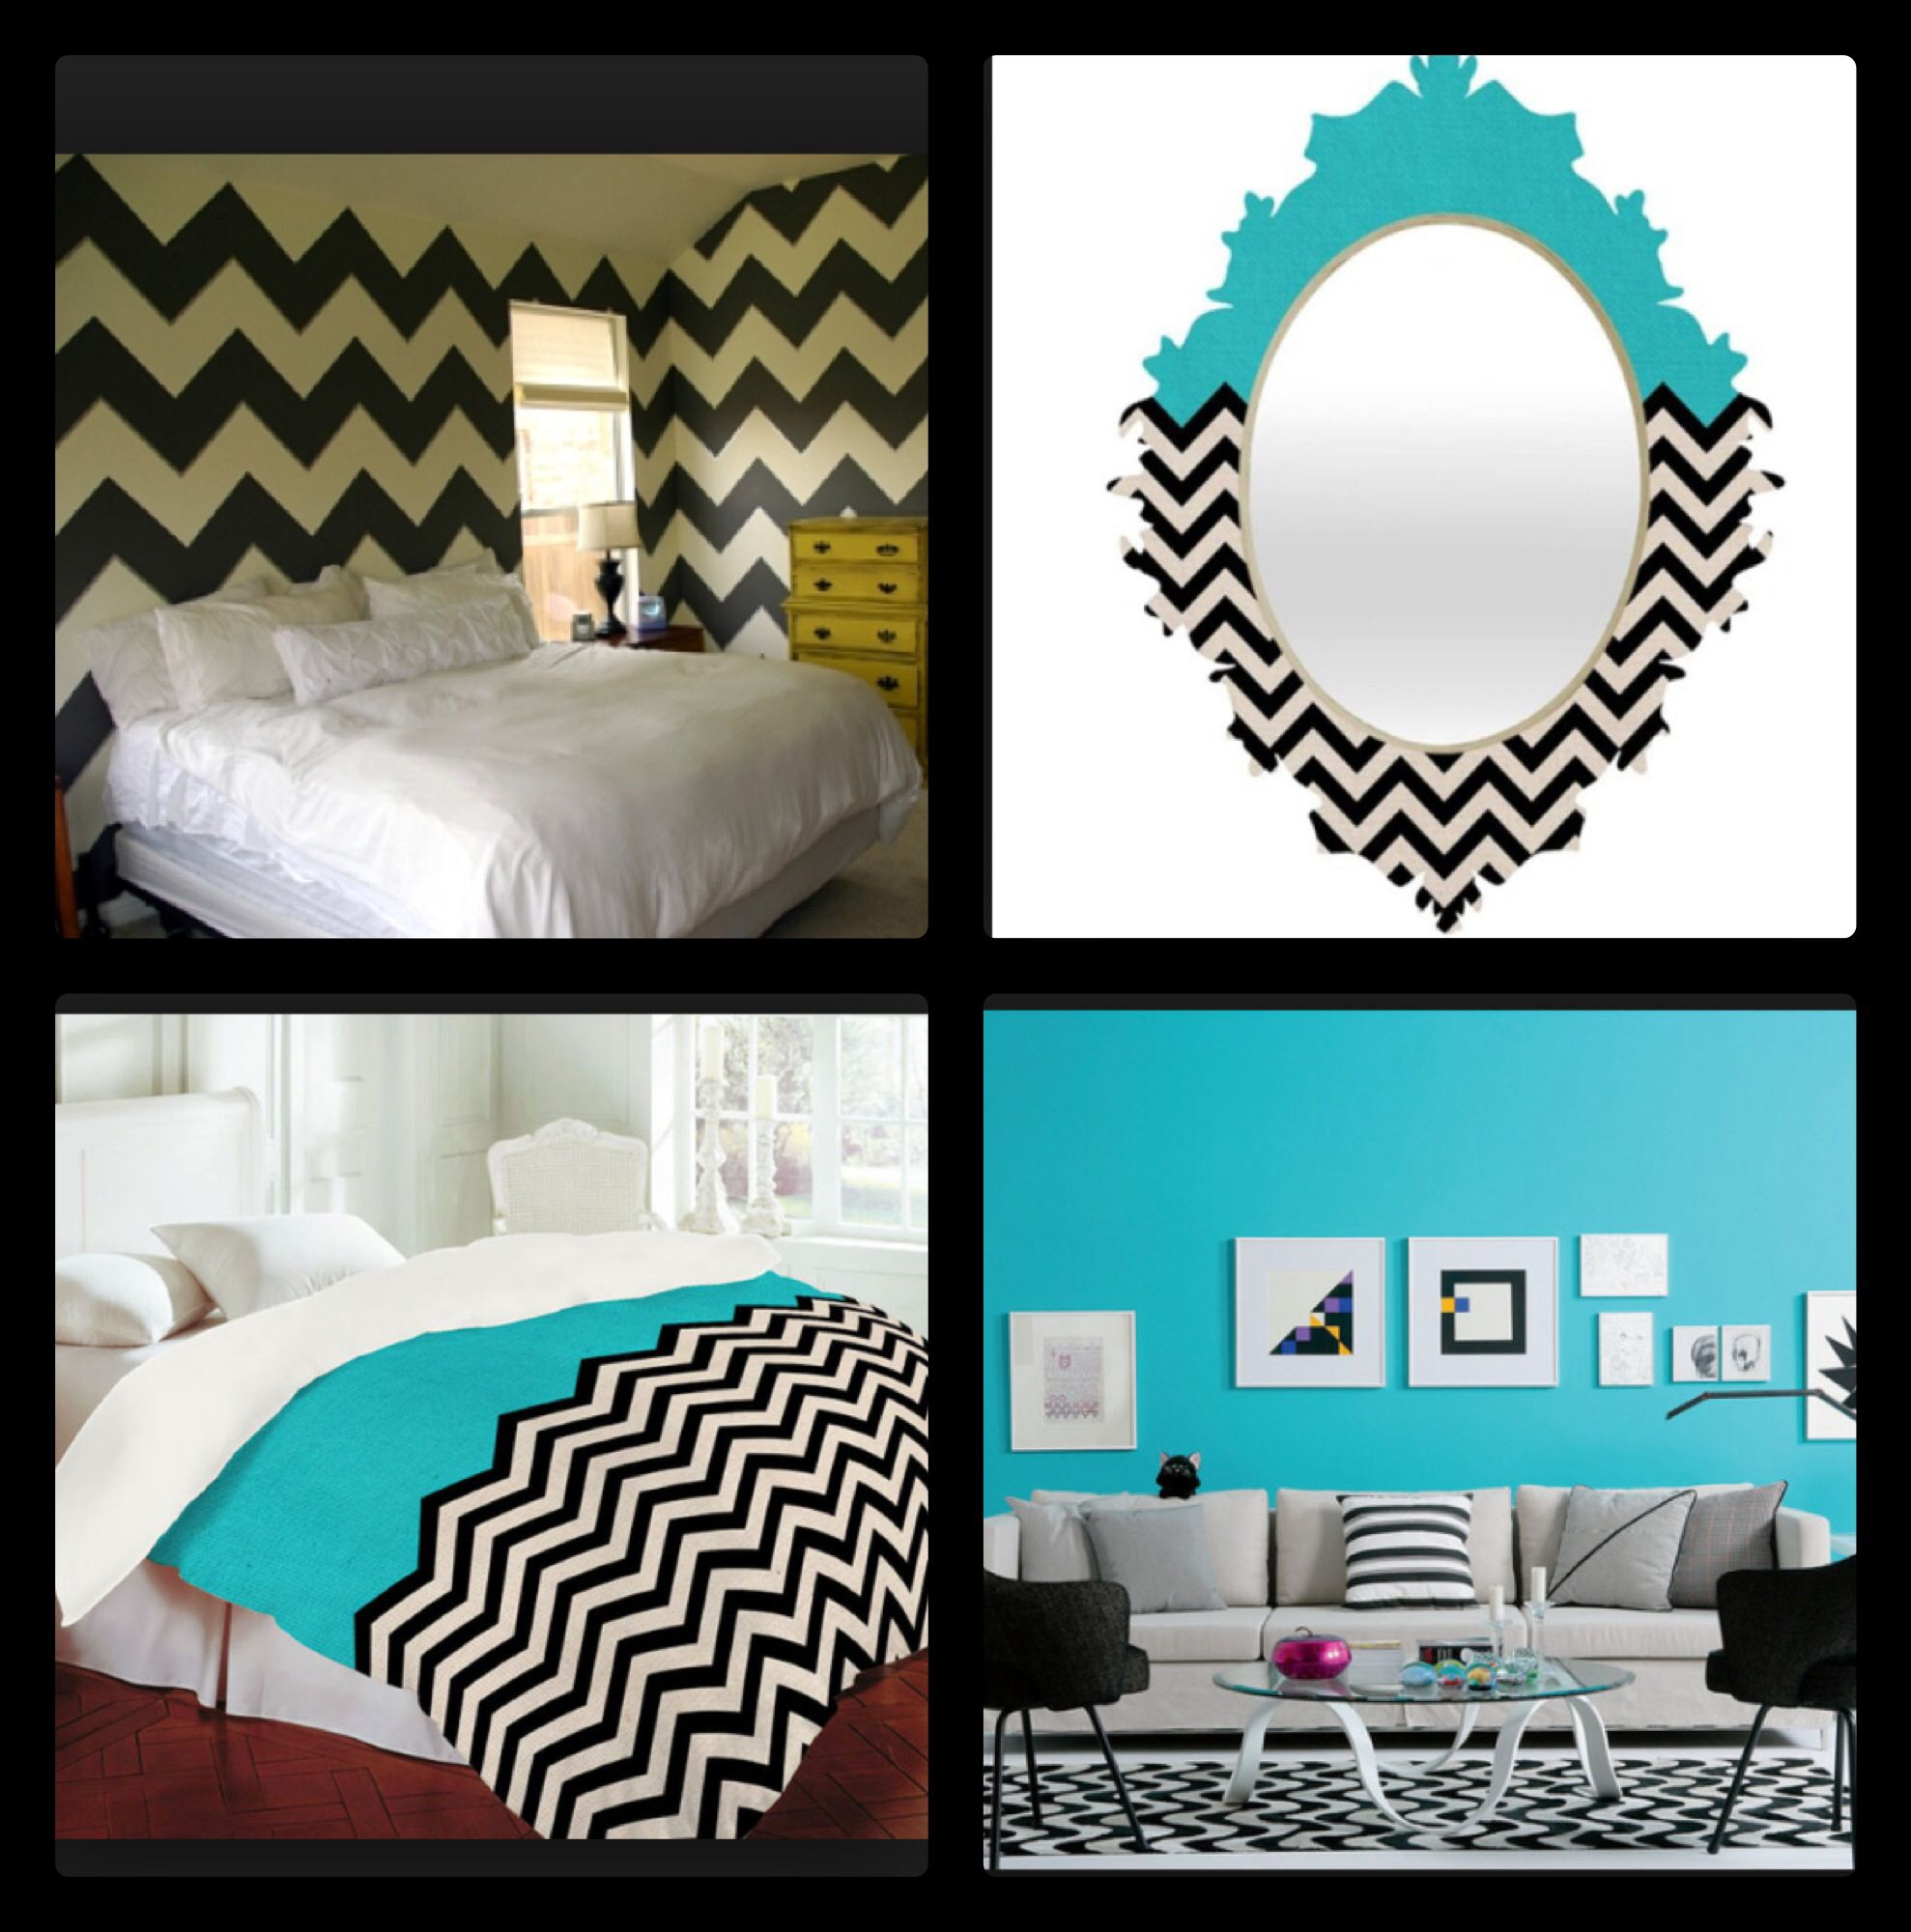 Charmant Turquoise, Black, And White Chevron Room Ideas